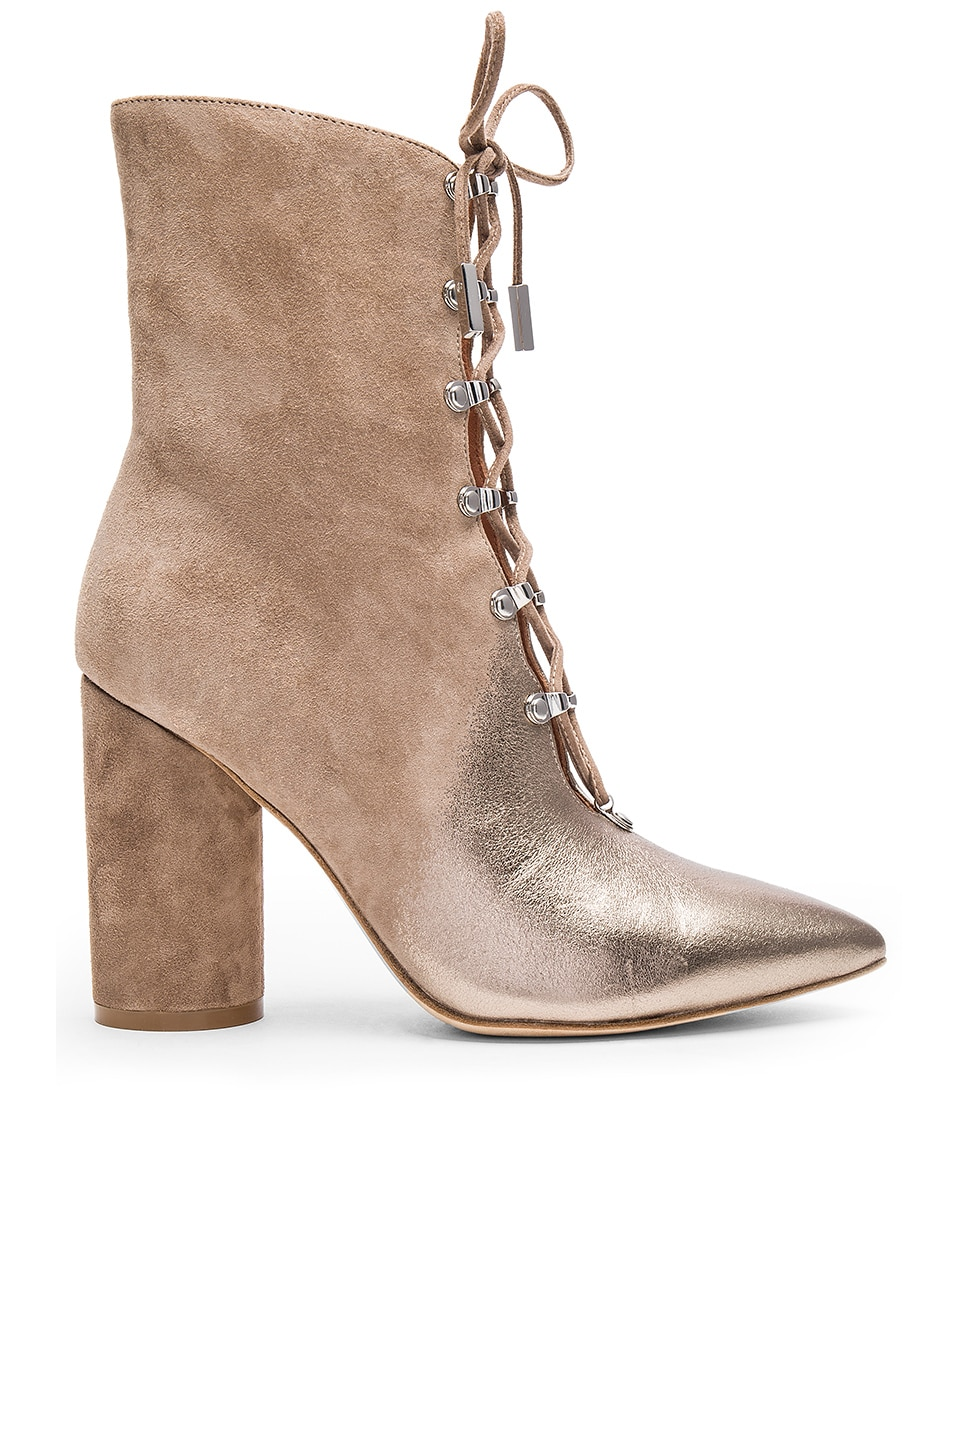 Sigerson Morrison Knight Bootie in Pyrite